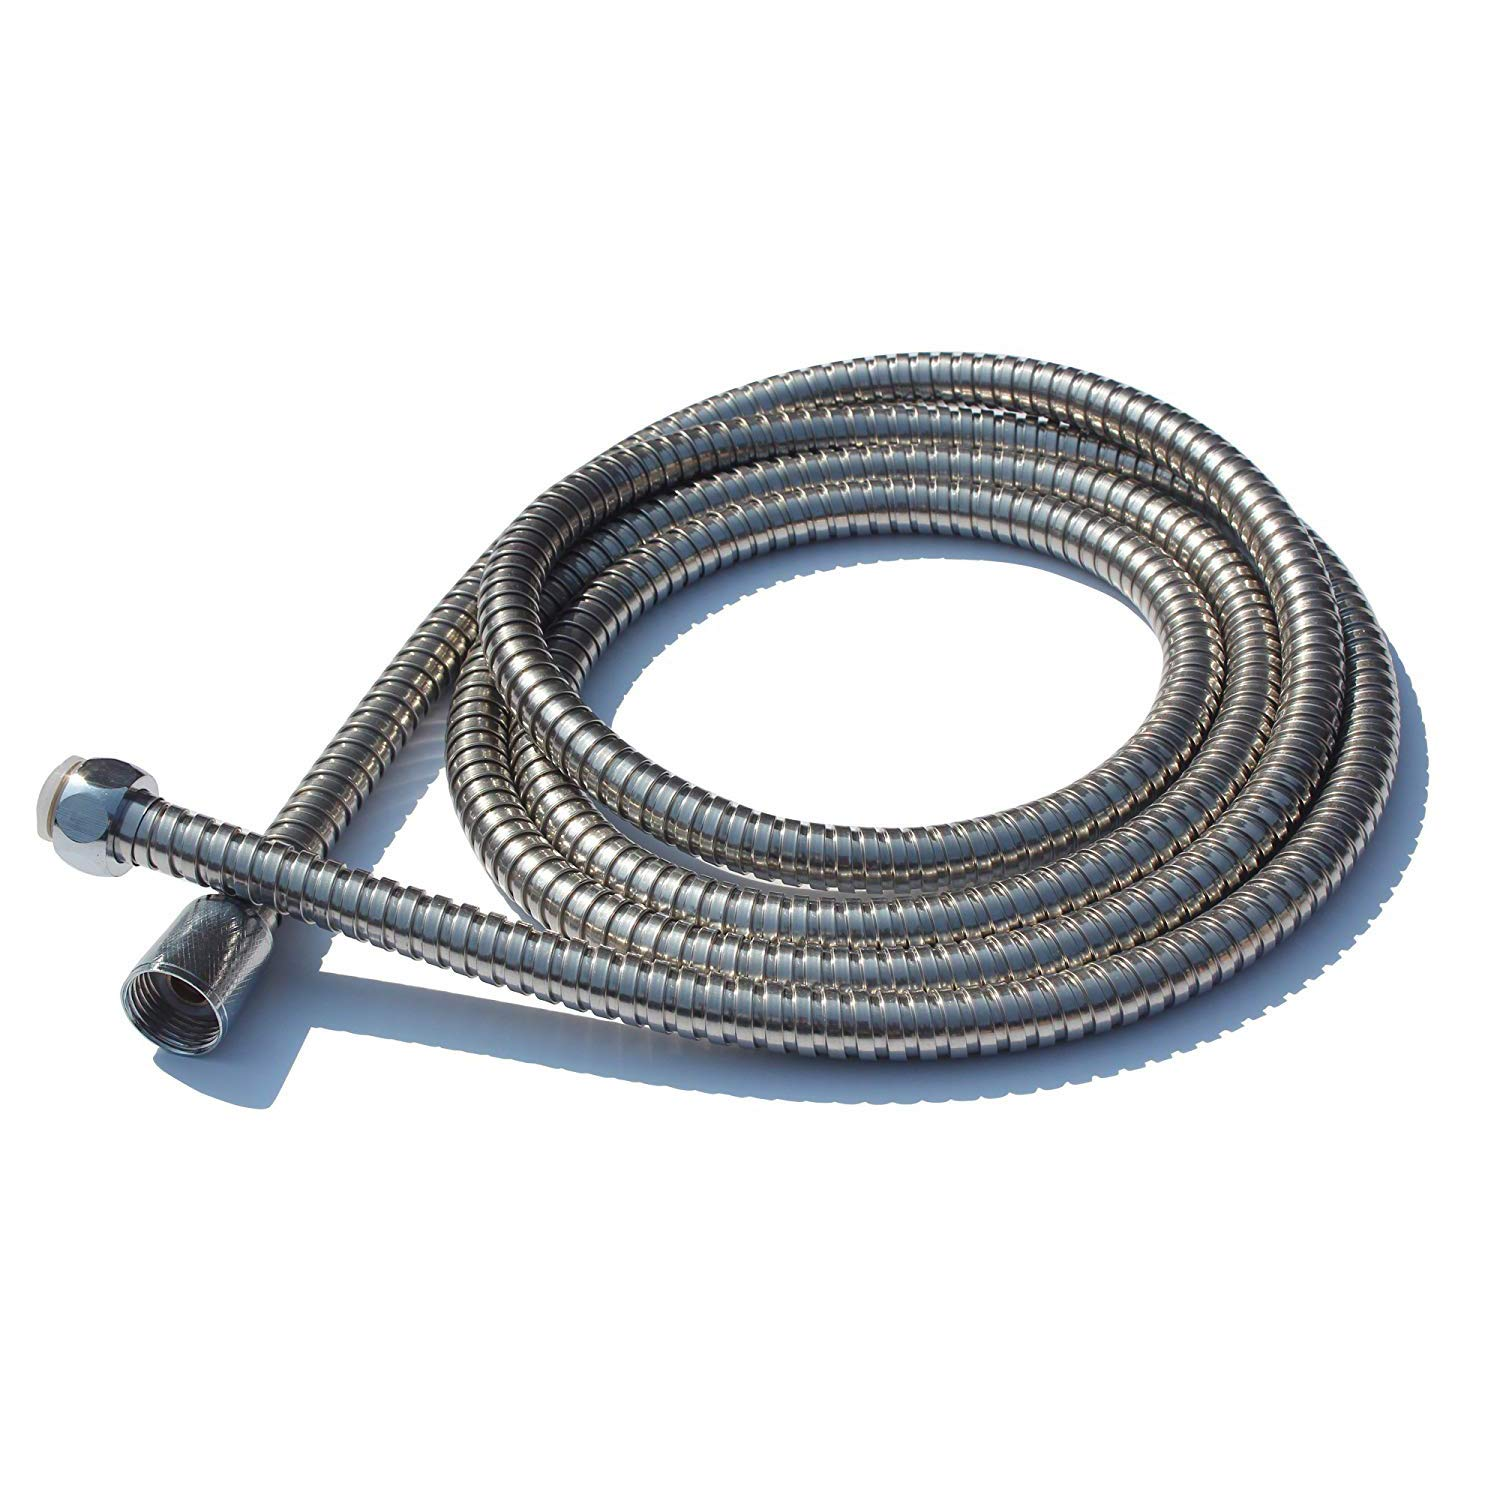 Anti-Explosion Leakproof Flexible Stainless Steel 2.0-Meter Extra Long Shower Hose Flexible Anti-kink Stainless Steel Replacement Shower Pipe Chrome LLRY